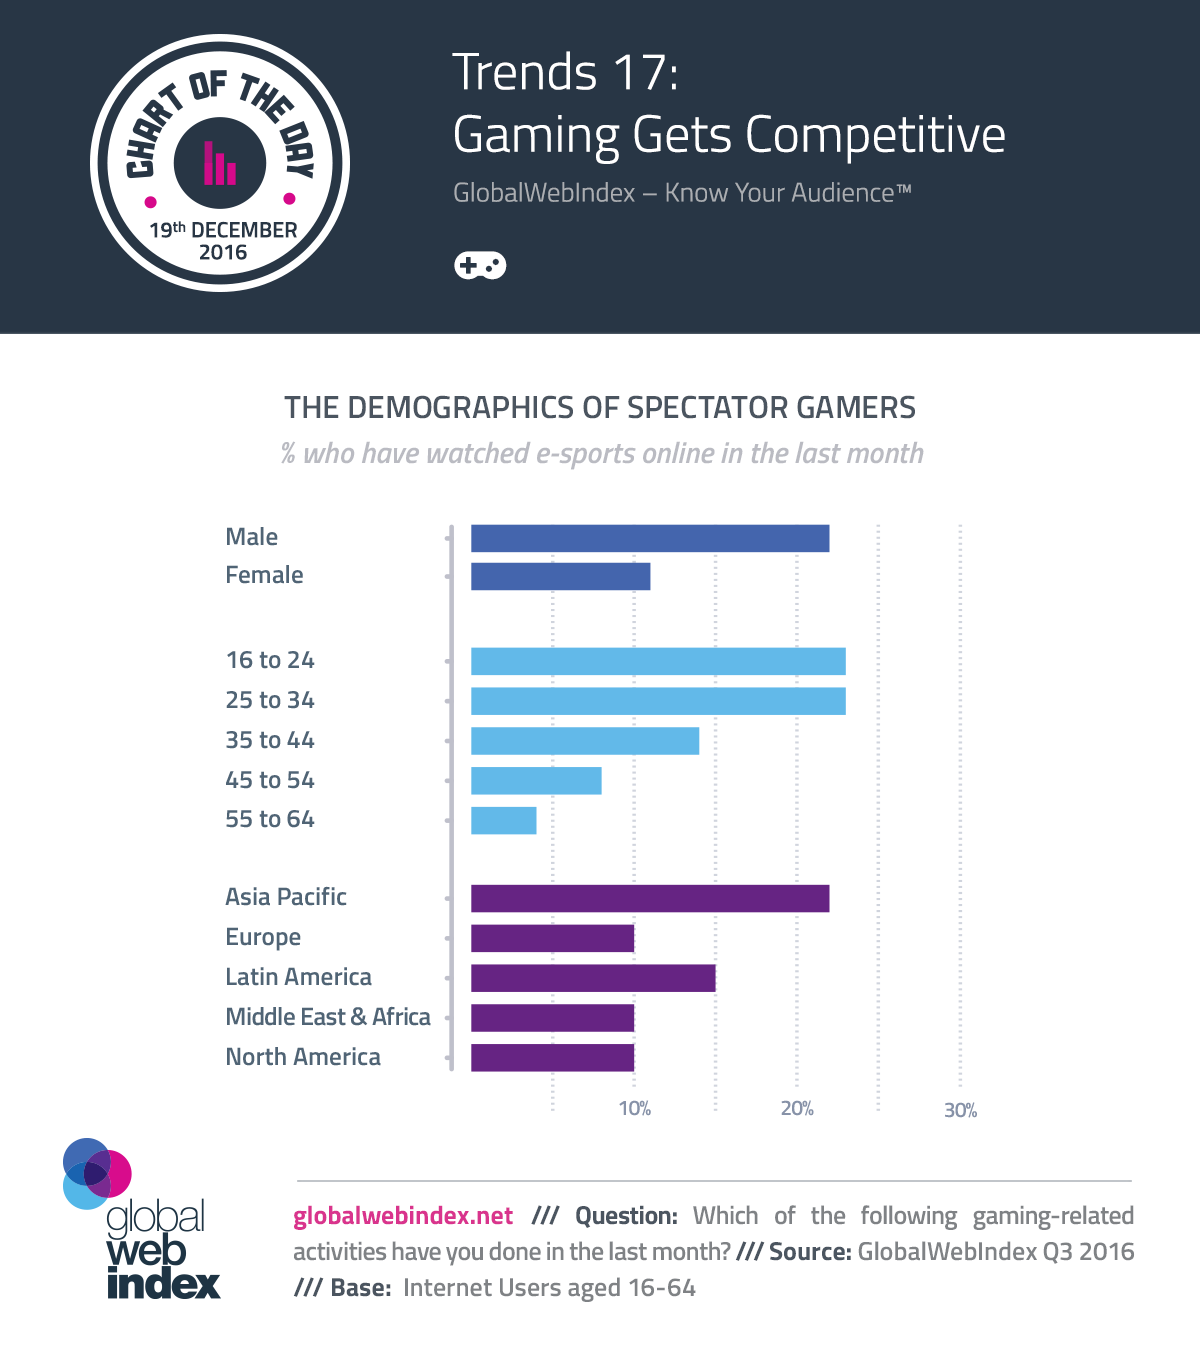 Trends 17: Gaming Gets Competitive